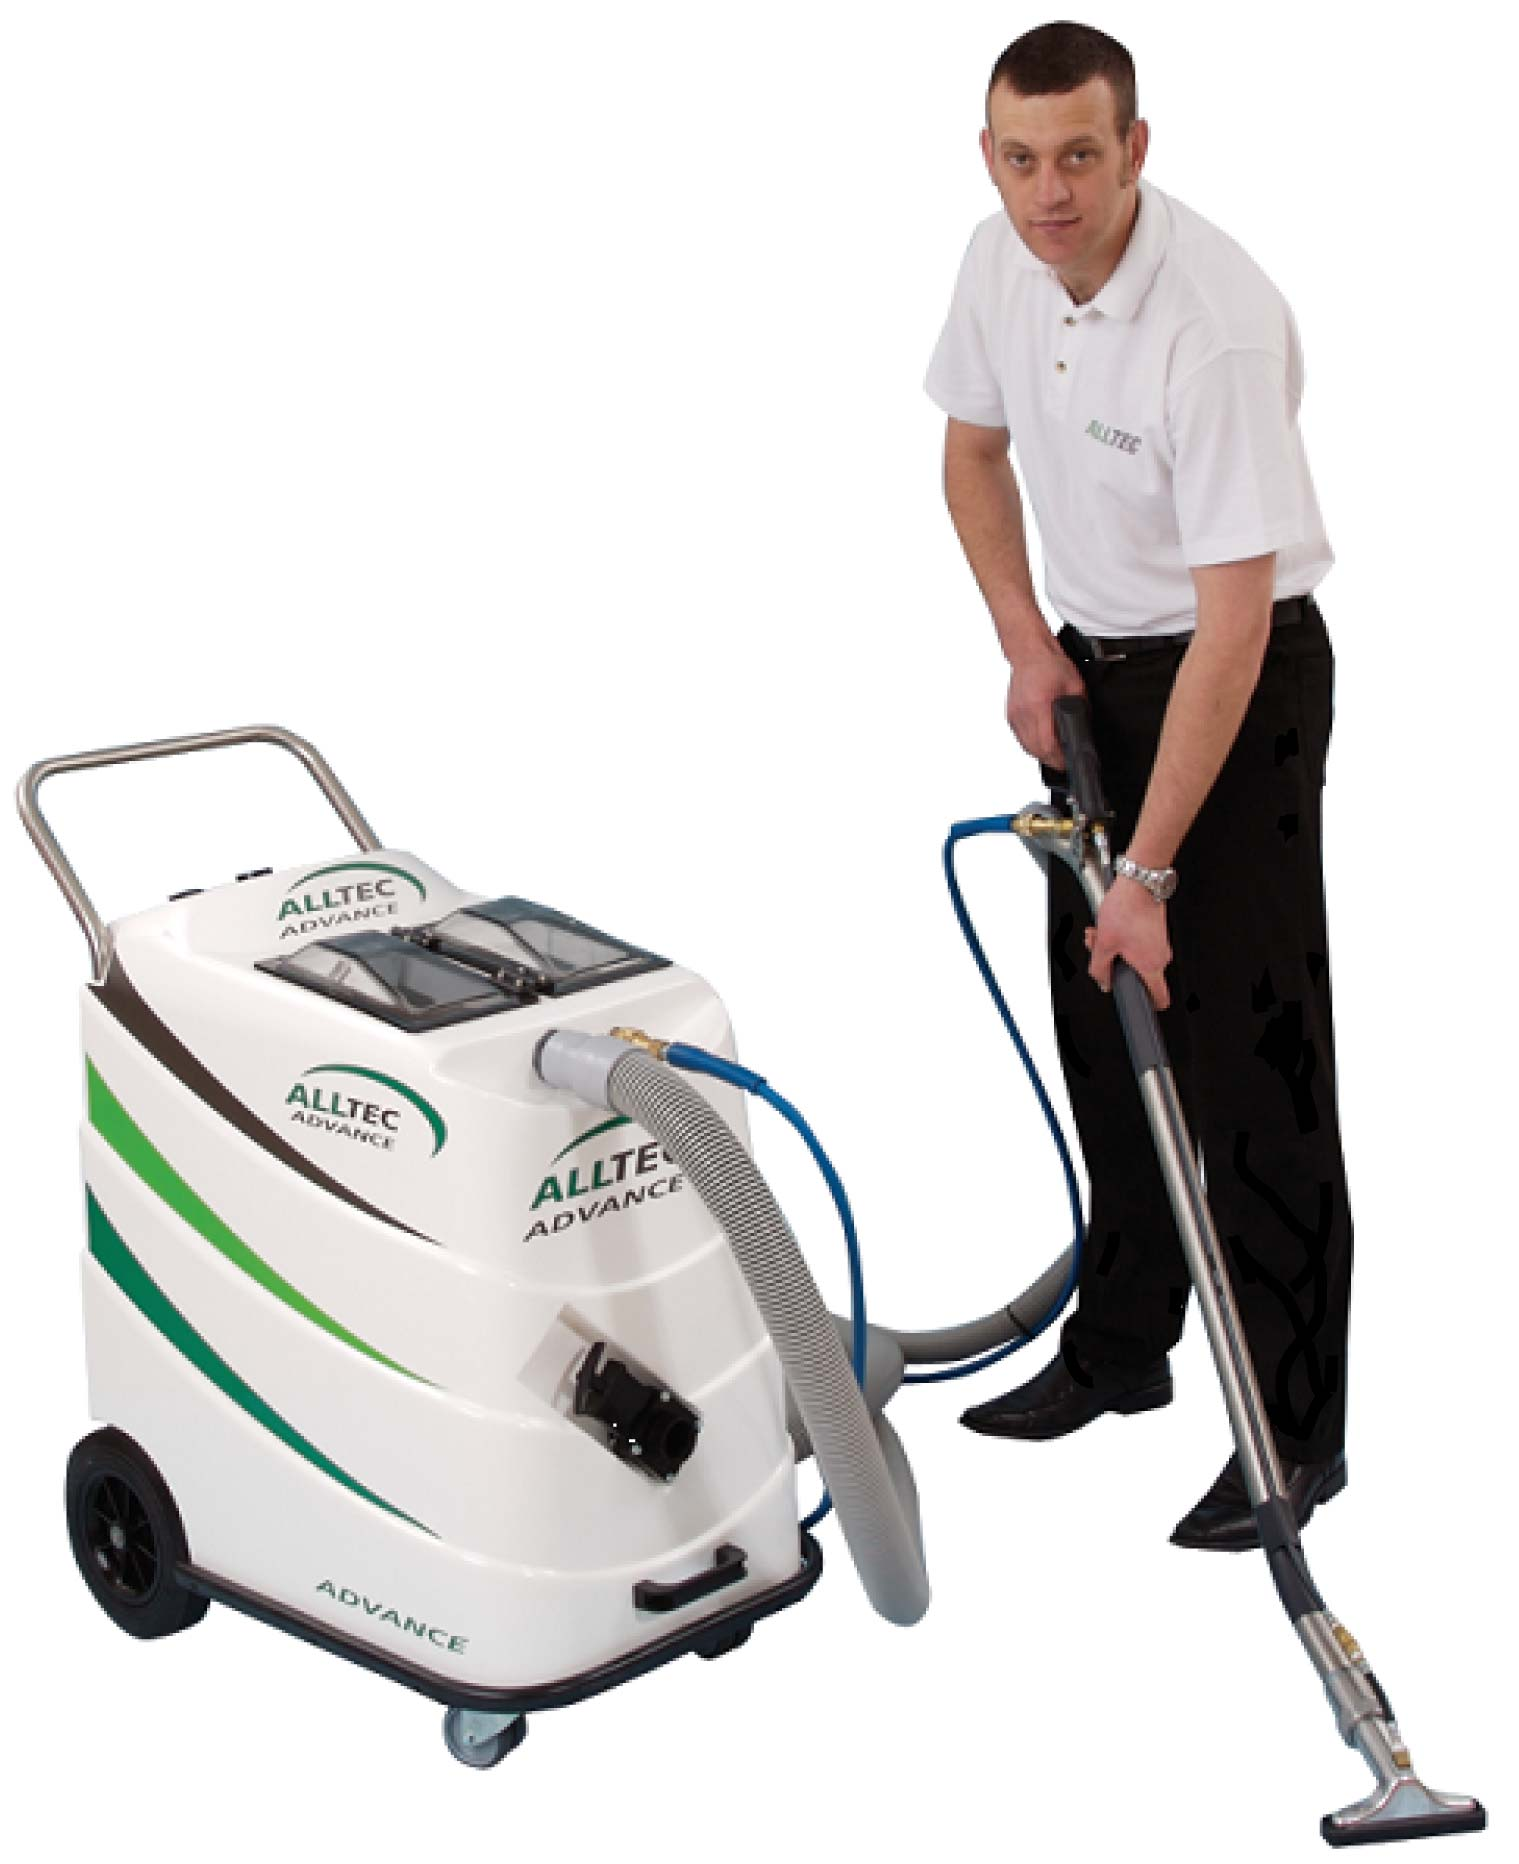 How Can I Find Out The Equipment Needed For Carpet Cleaning